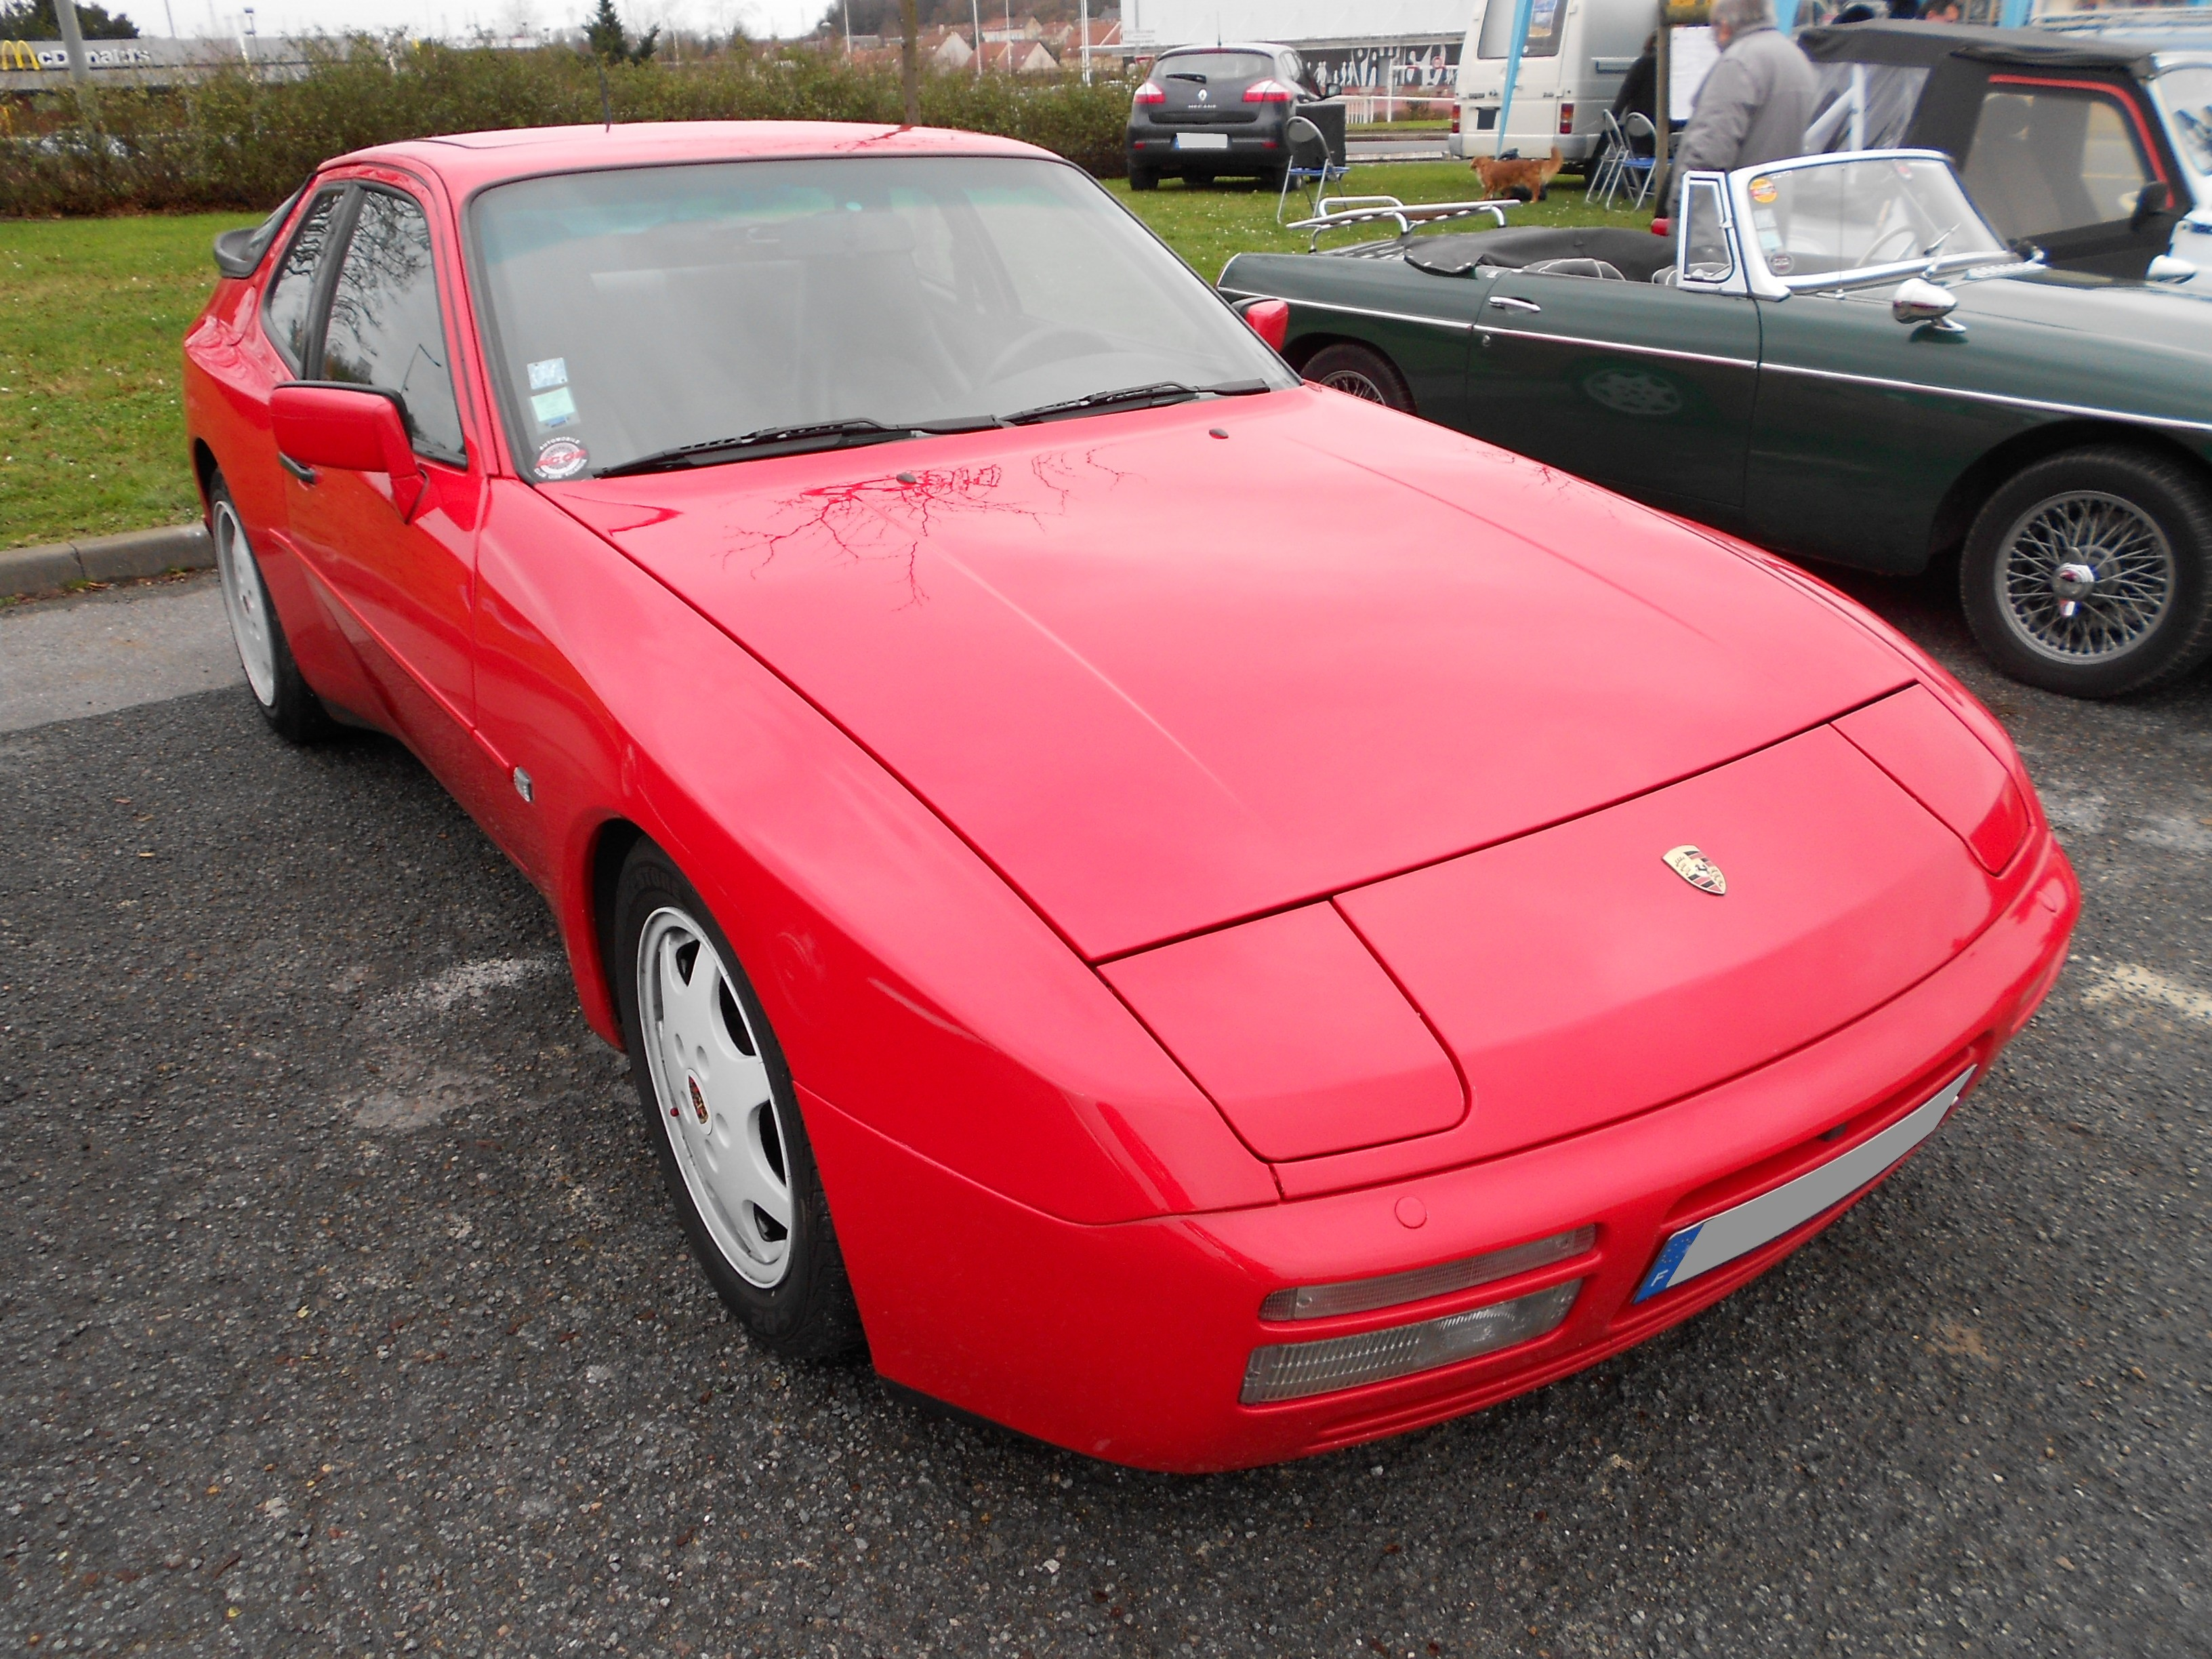 porsche 944 turbo montataire le 22 janvier 2012 mike060 photos club. Black Bedroom Furniture Sets. Home Design Ideas